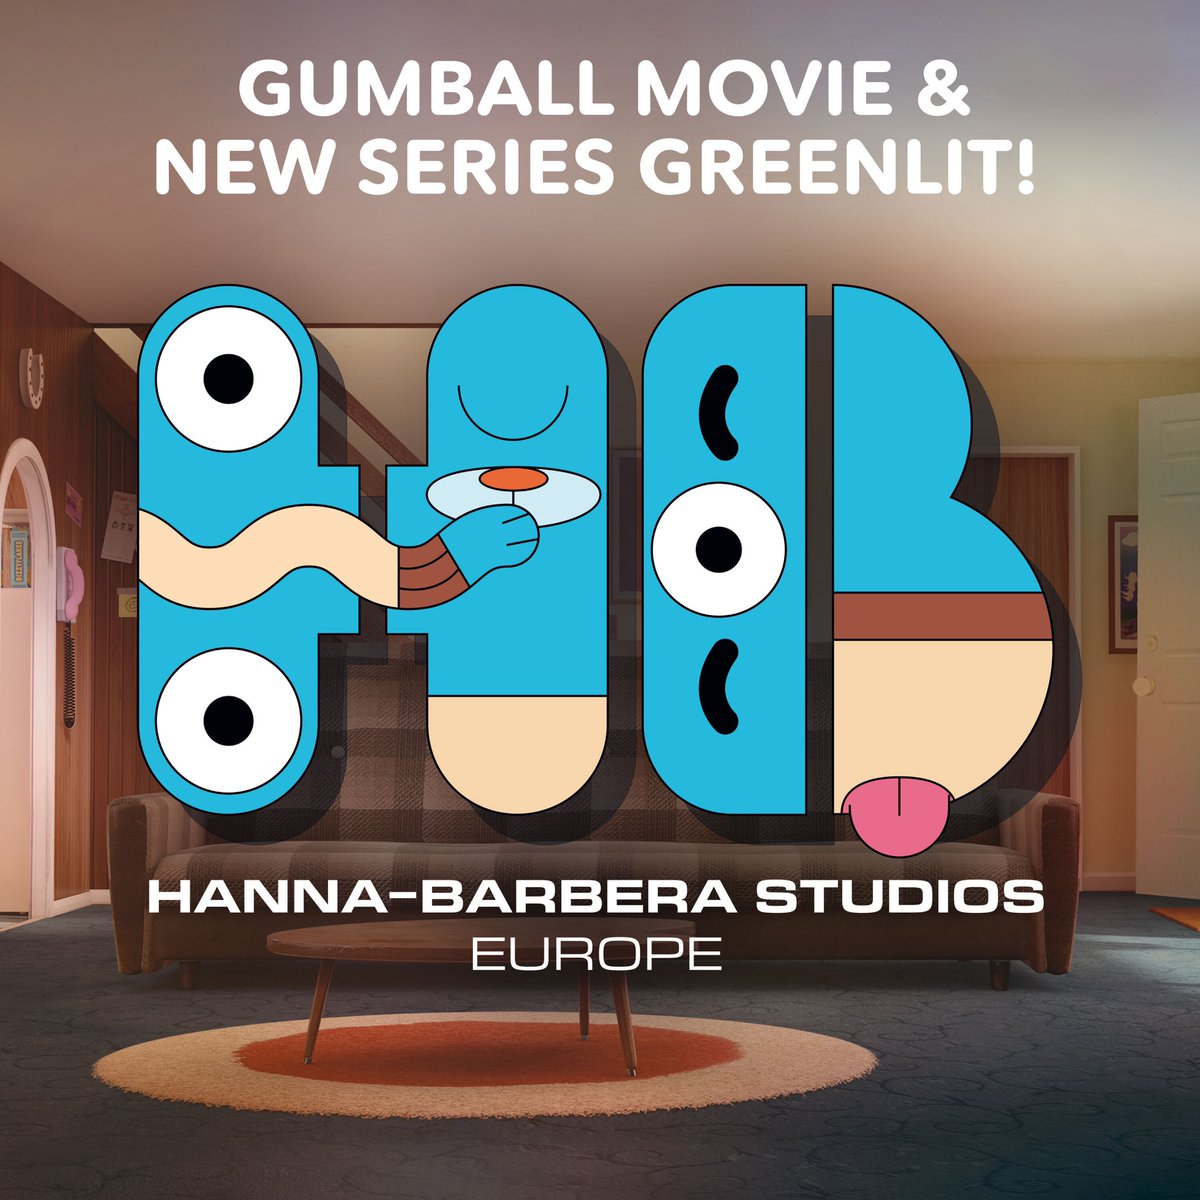 @cartoonnetwork's photo on Gumball